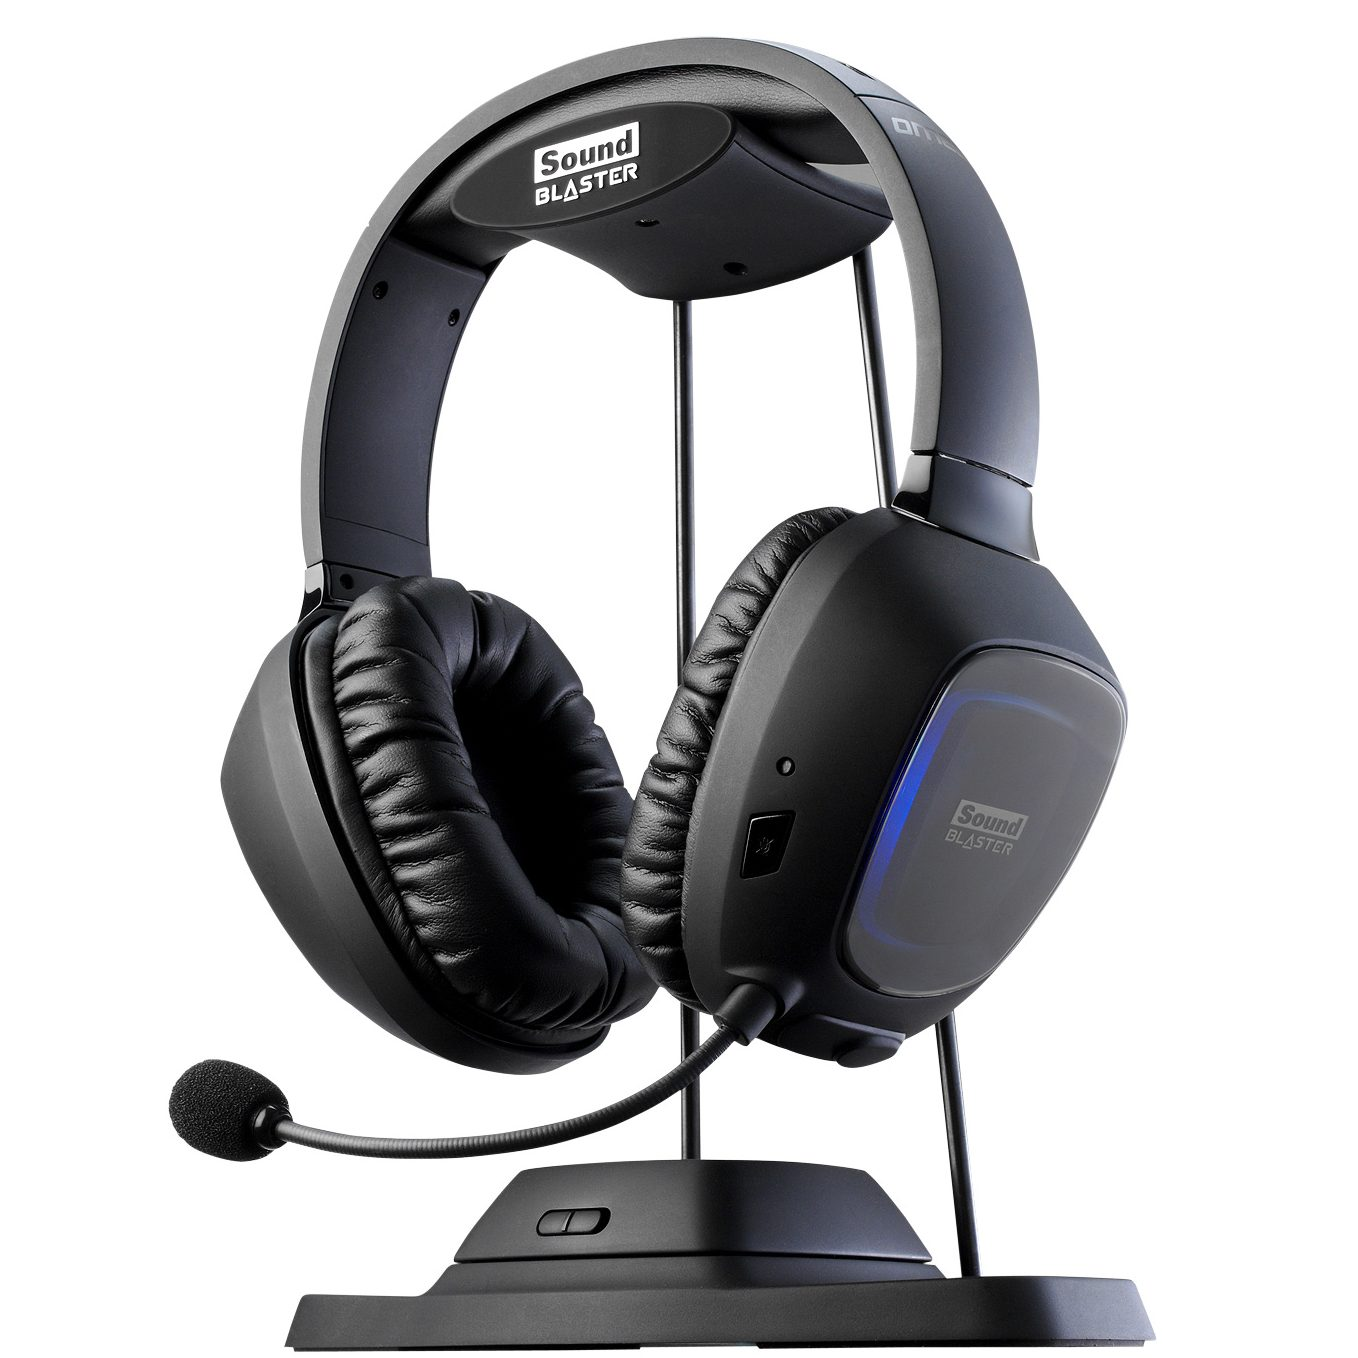 Creative Sound Blaster Tactic3D Omega Headset Review